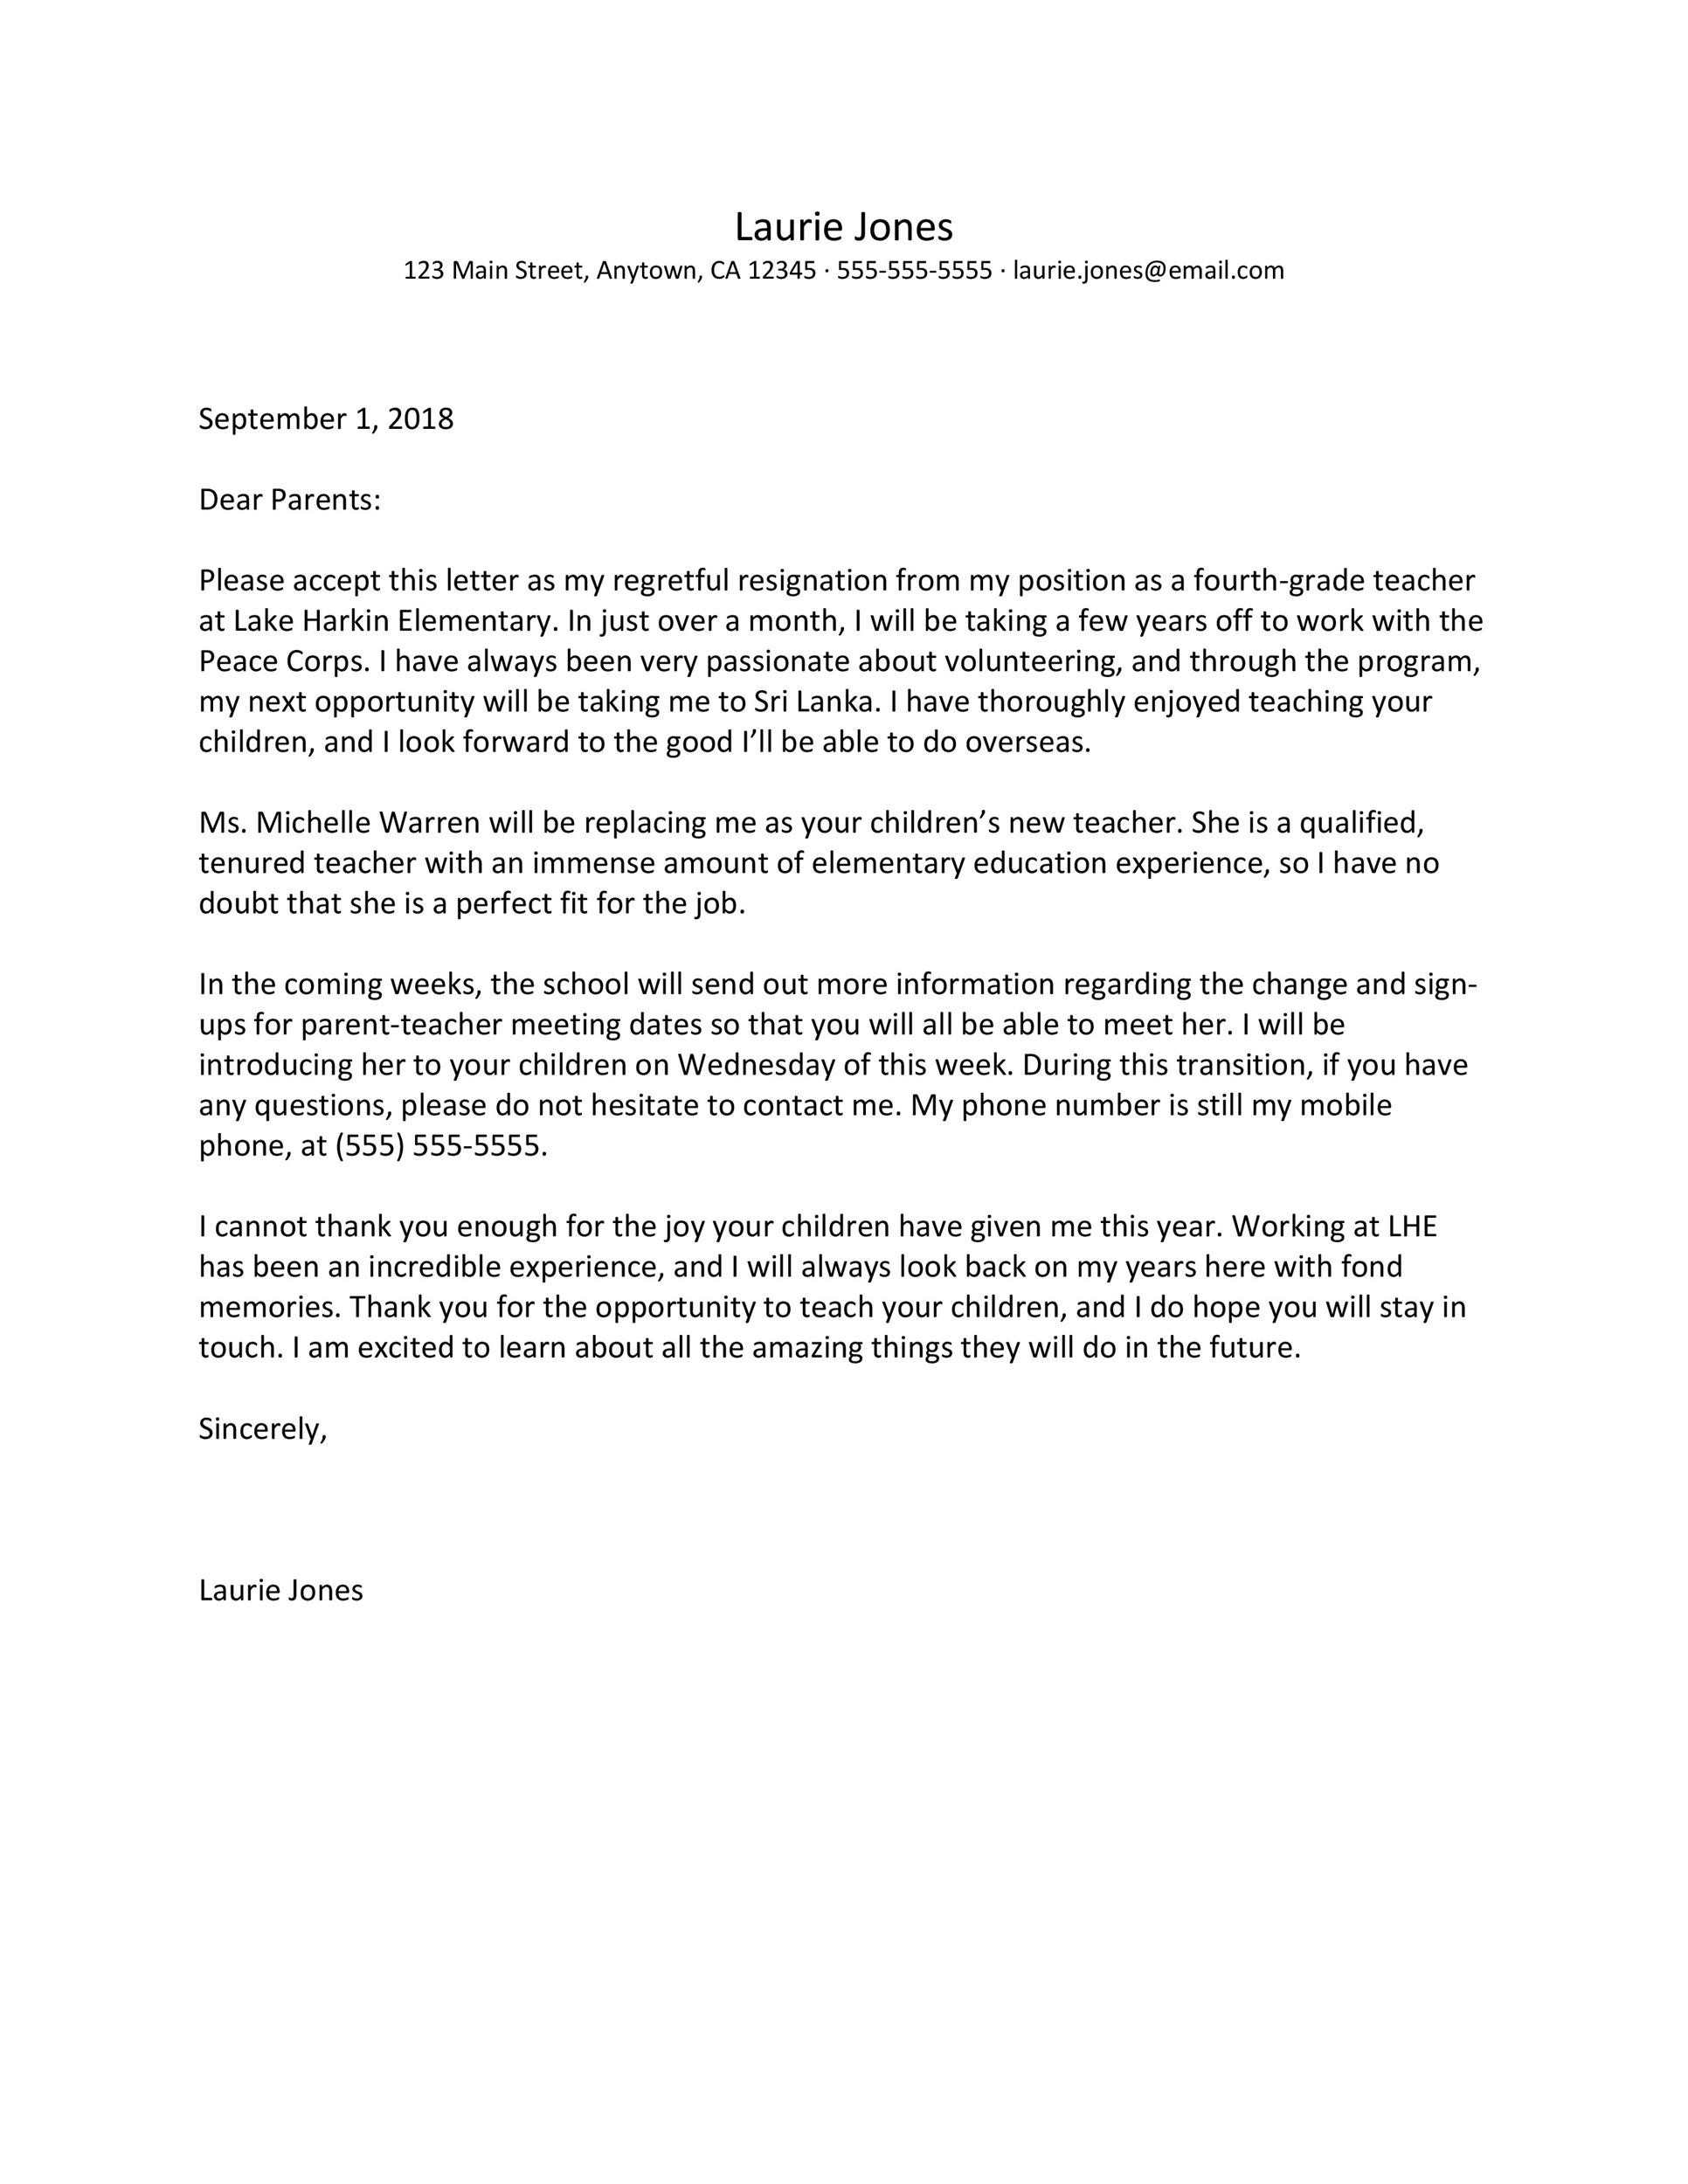 Teacher Resignation Letters